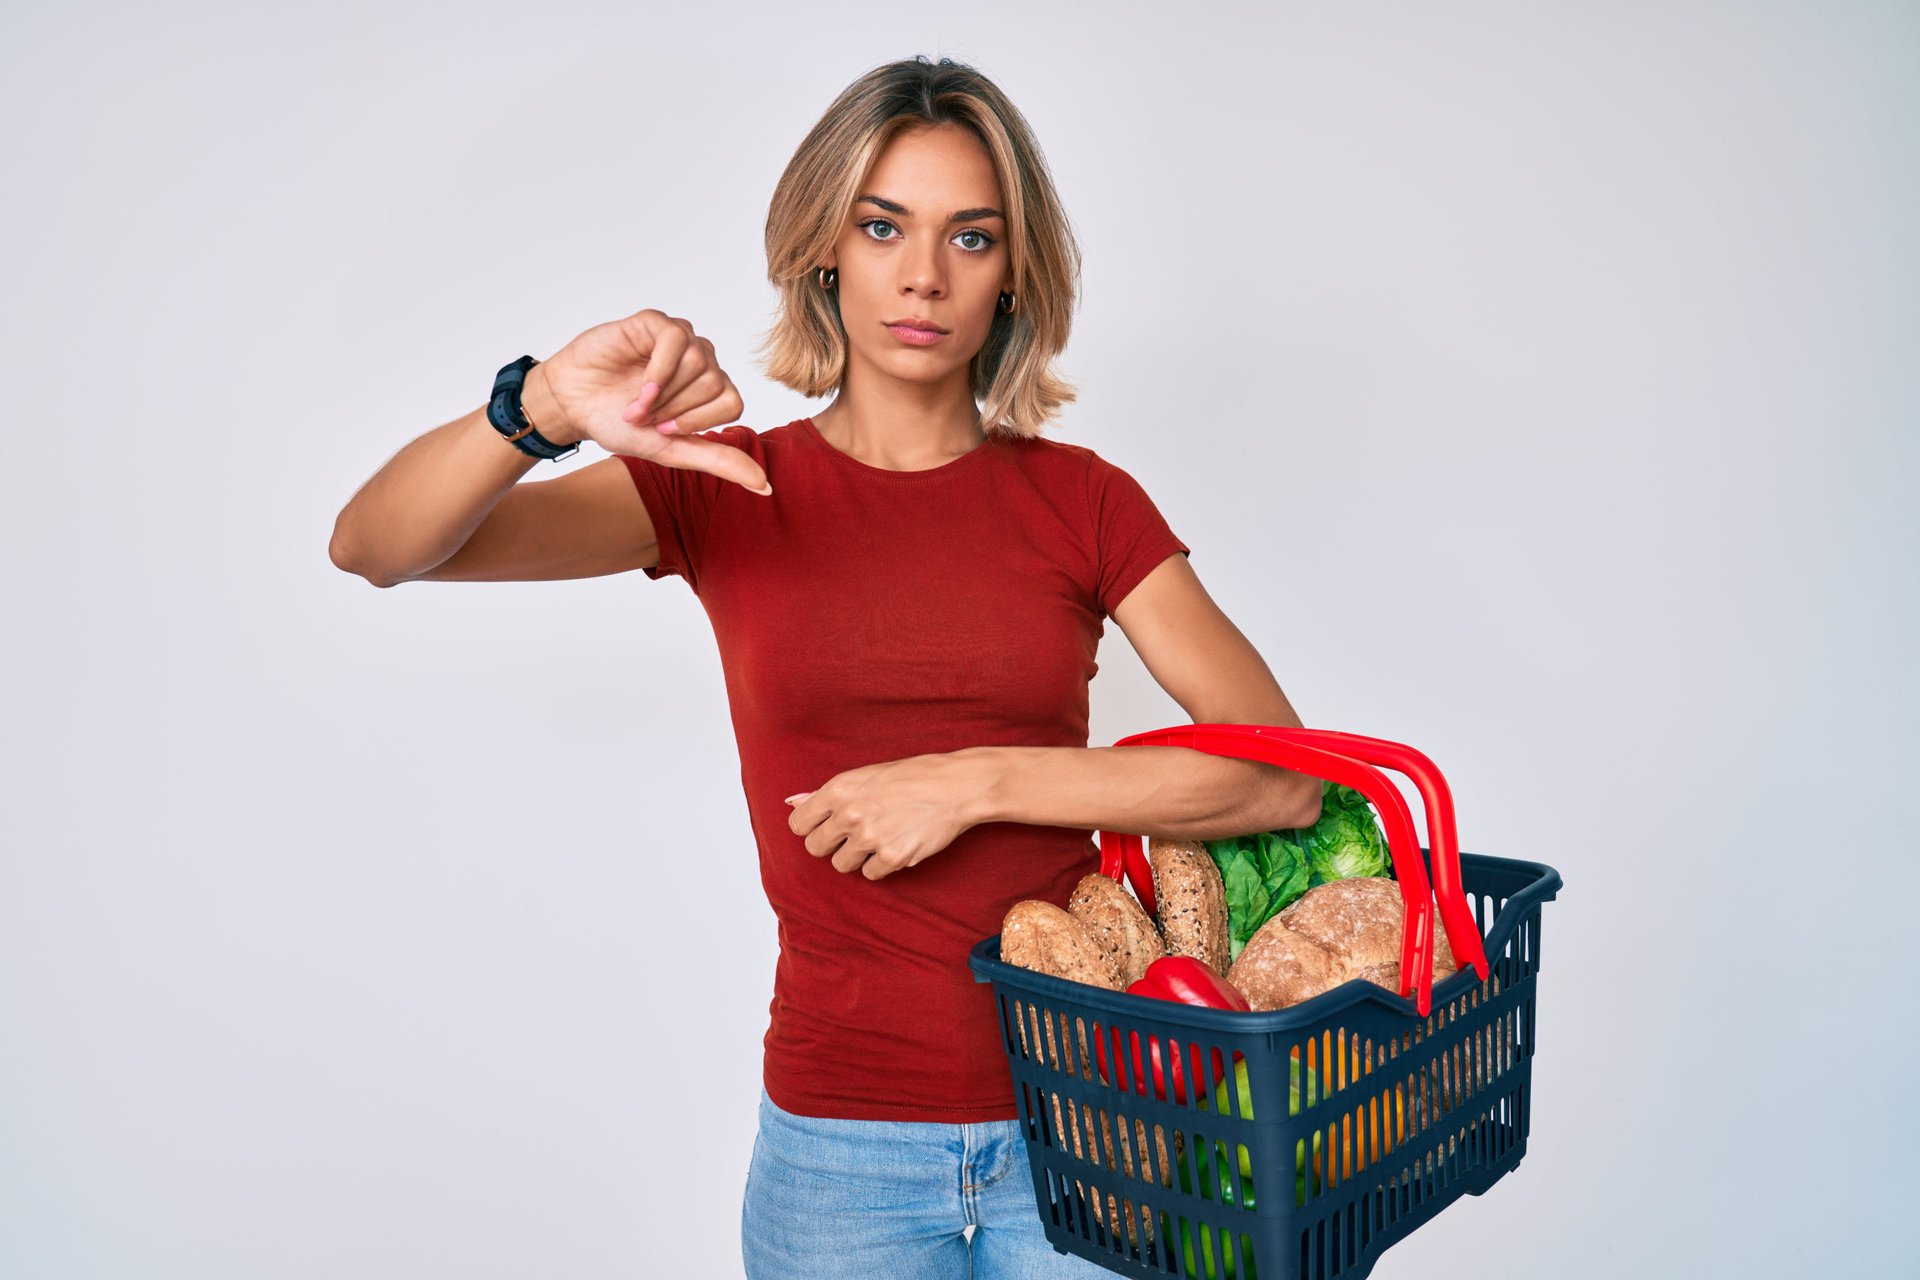 Woman with a basket of groceries giving thumbs down